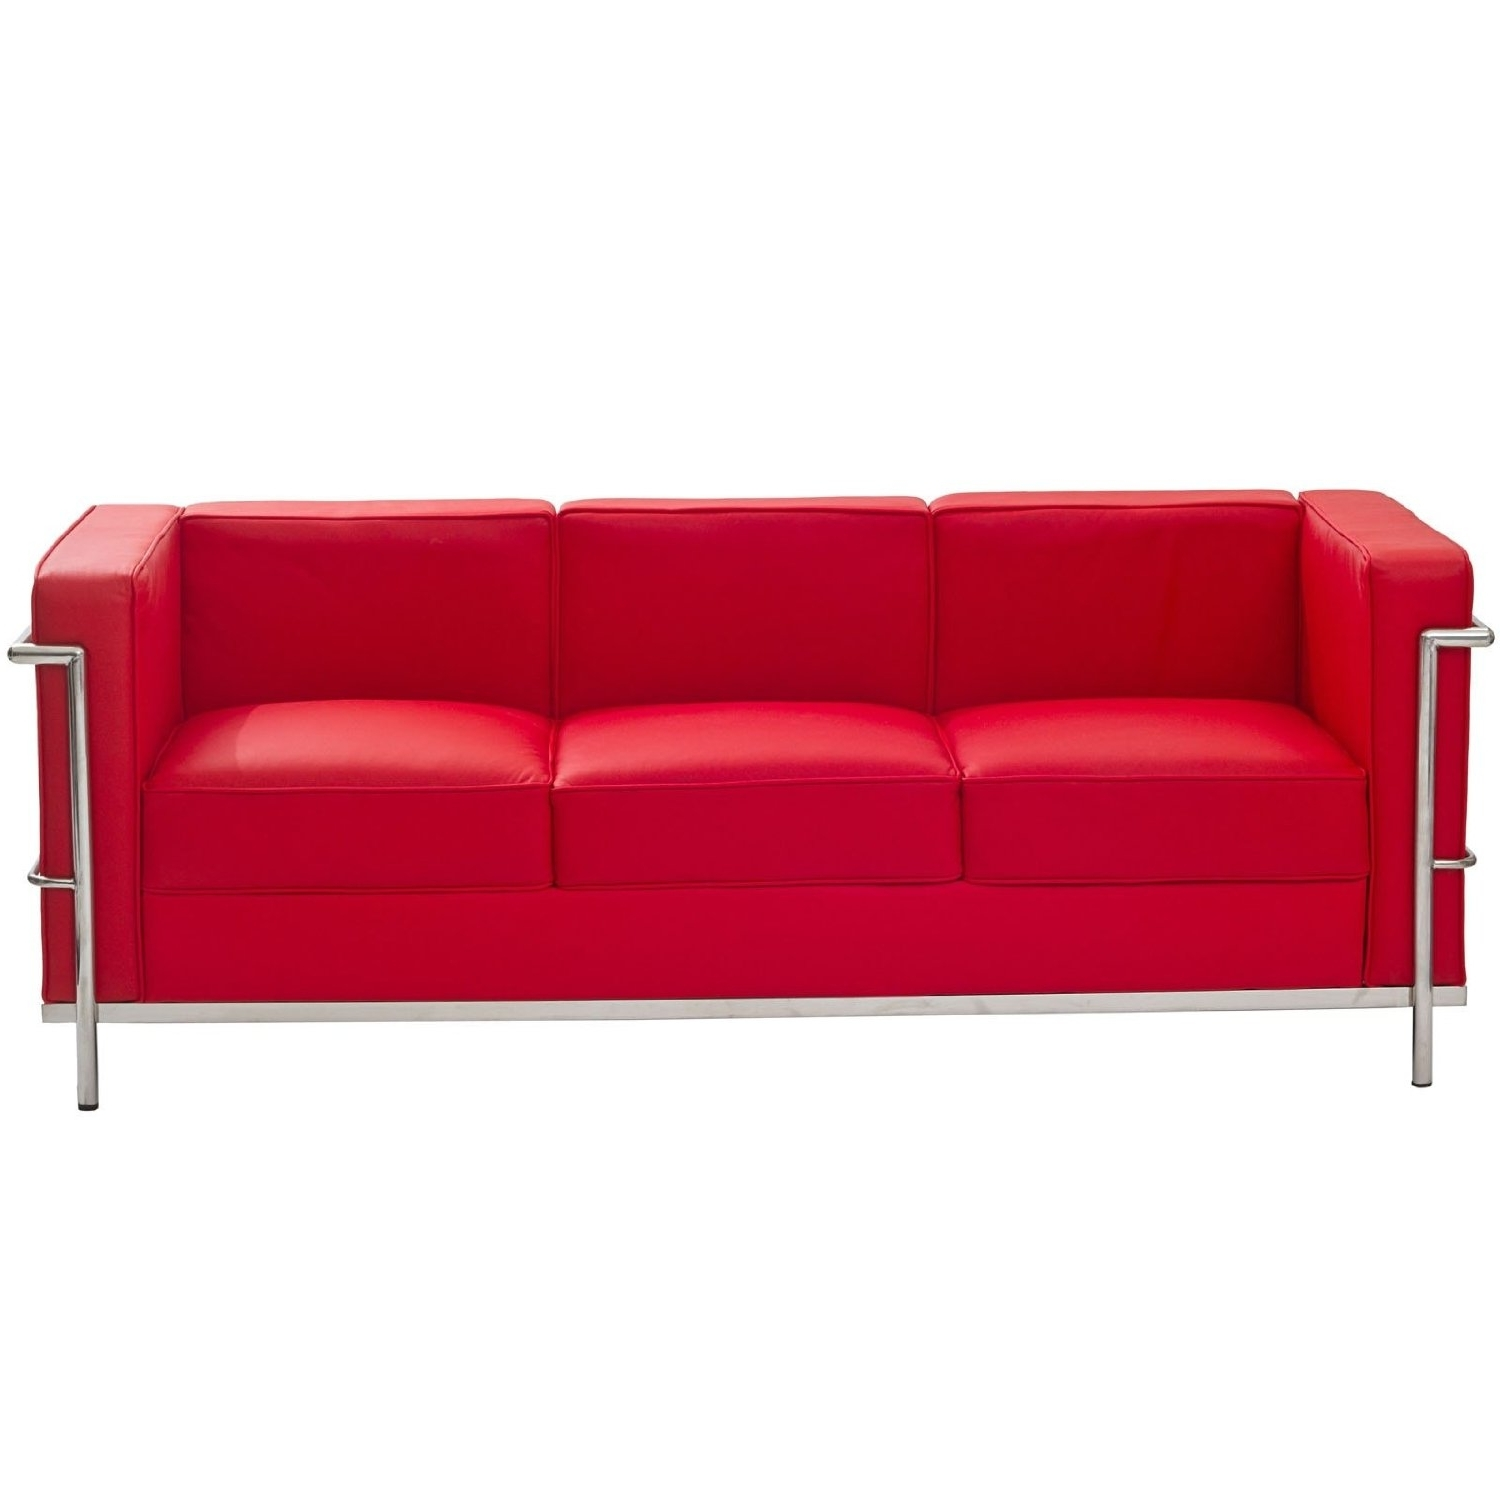 Most Current Furniture: Cool Red Leather Couches Chrome Base Finish For Modern Intended For Red Leather Couches (View 6 of 15)